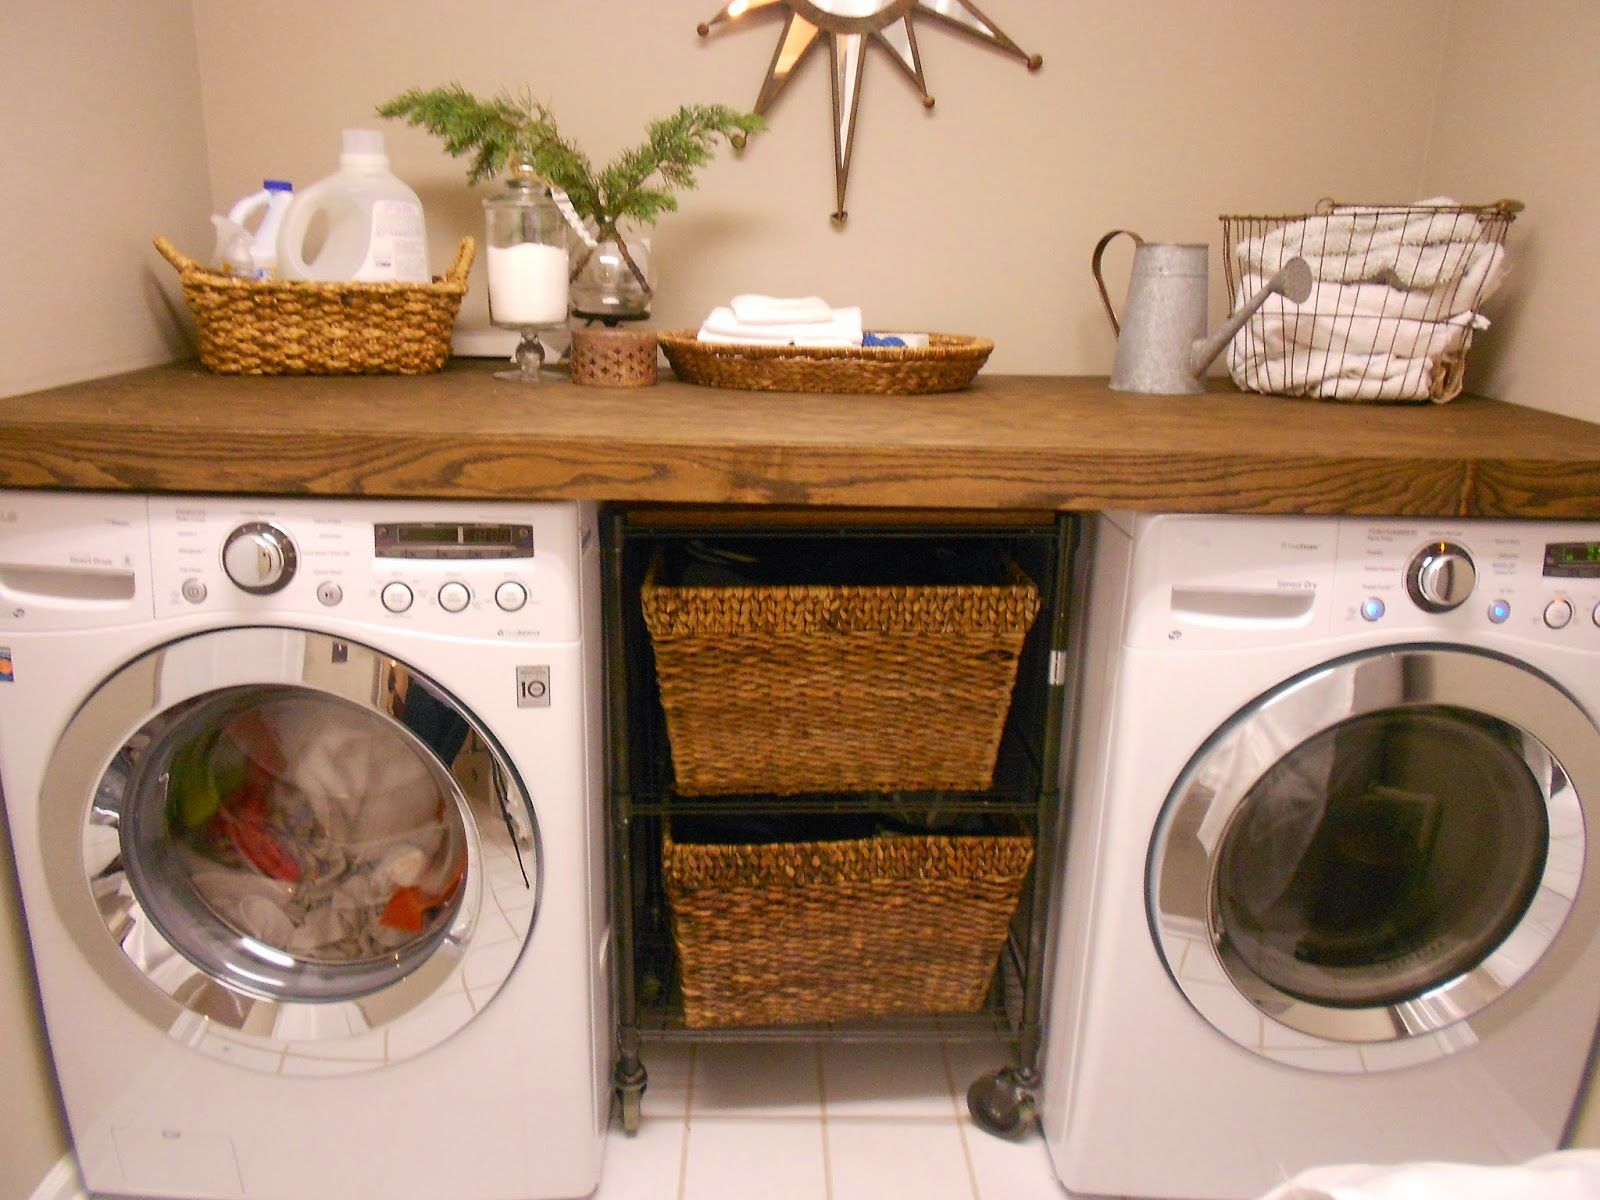 Laundry Room Update Laundry Room Update Laundry Room Updating